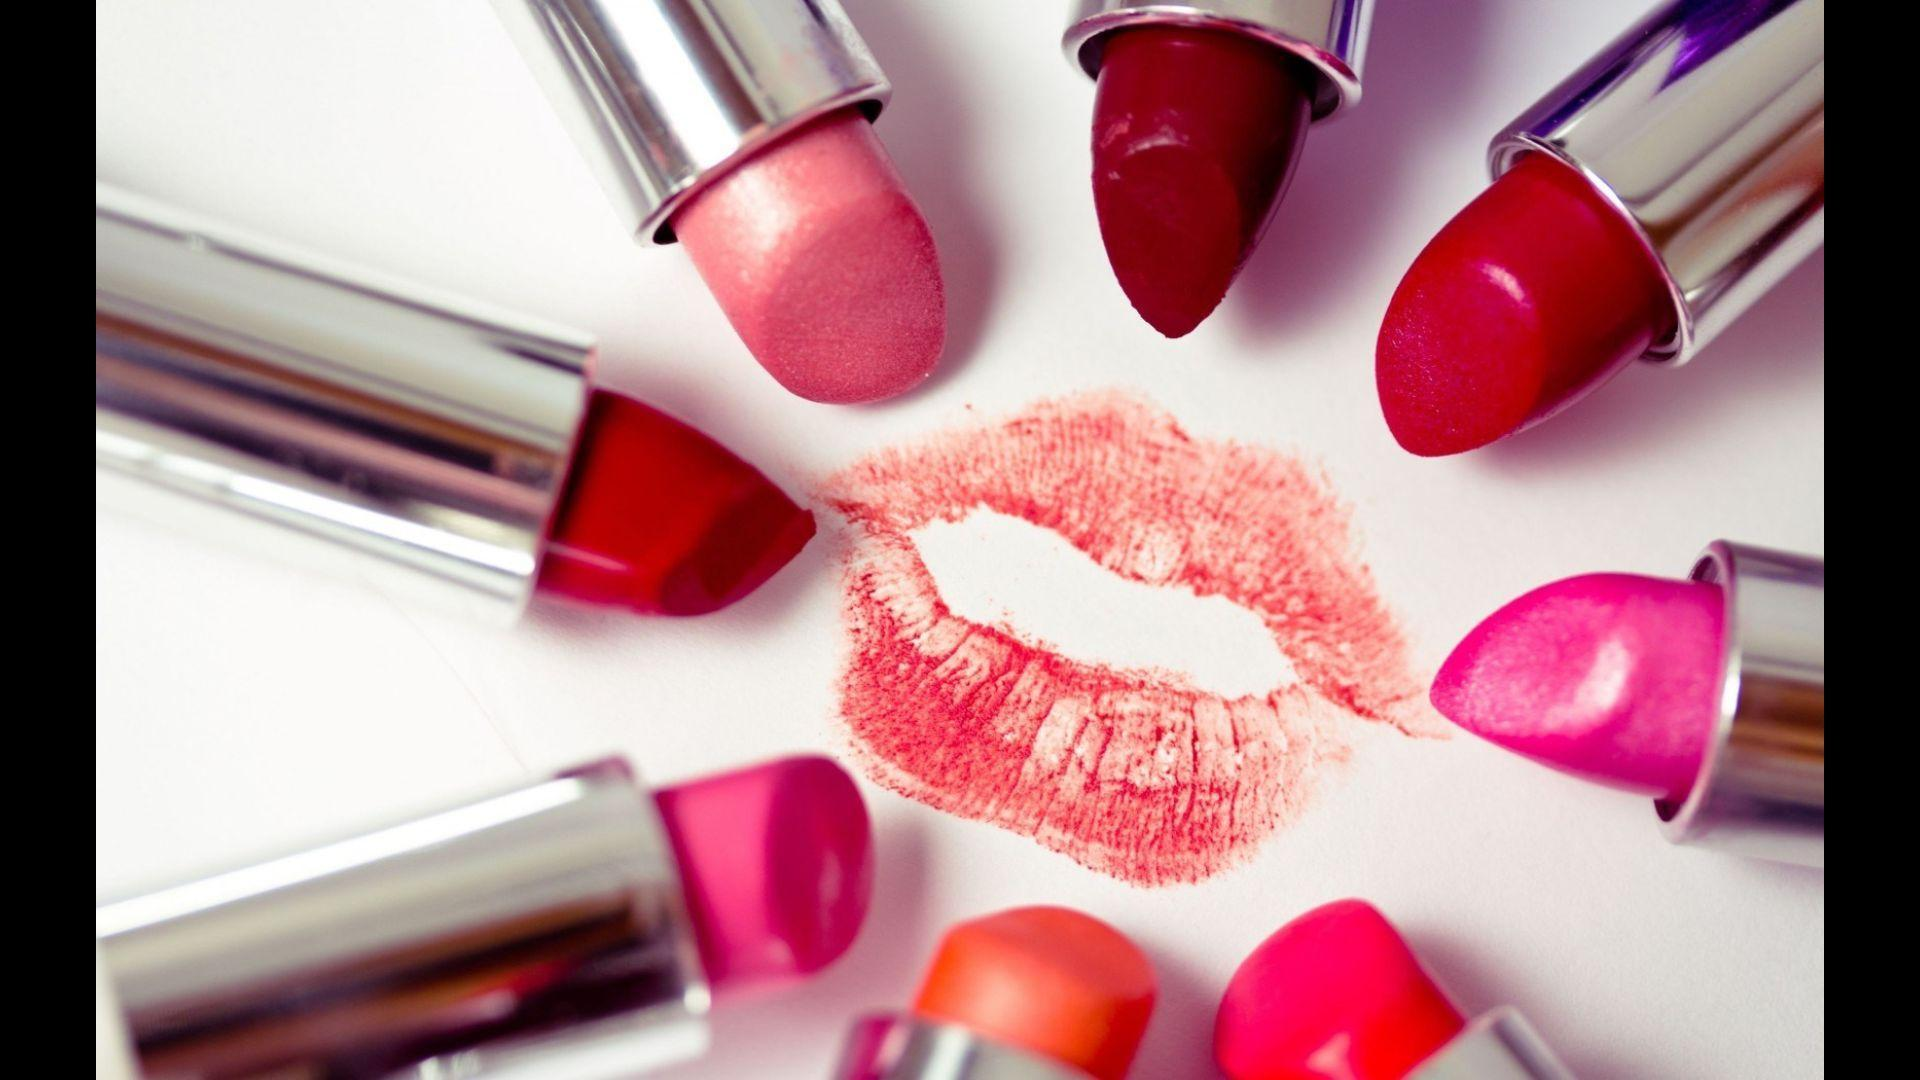 Lipstick Makeup Wallpapers For Android Apk Download